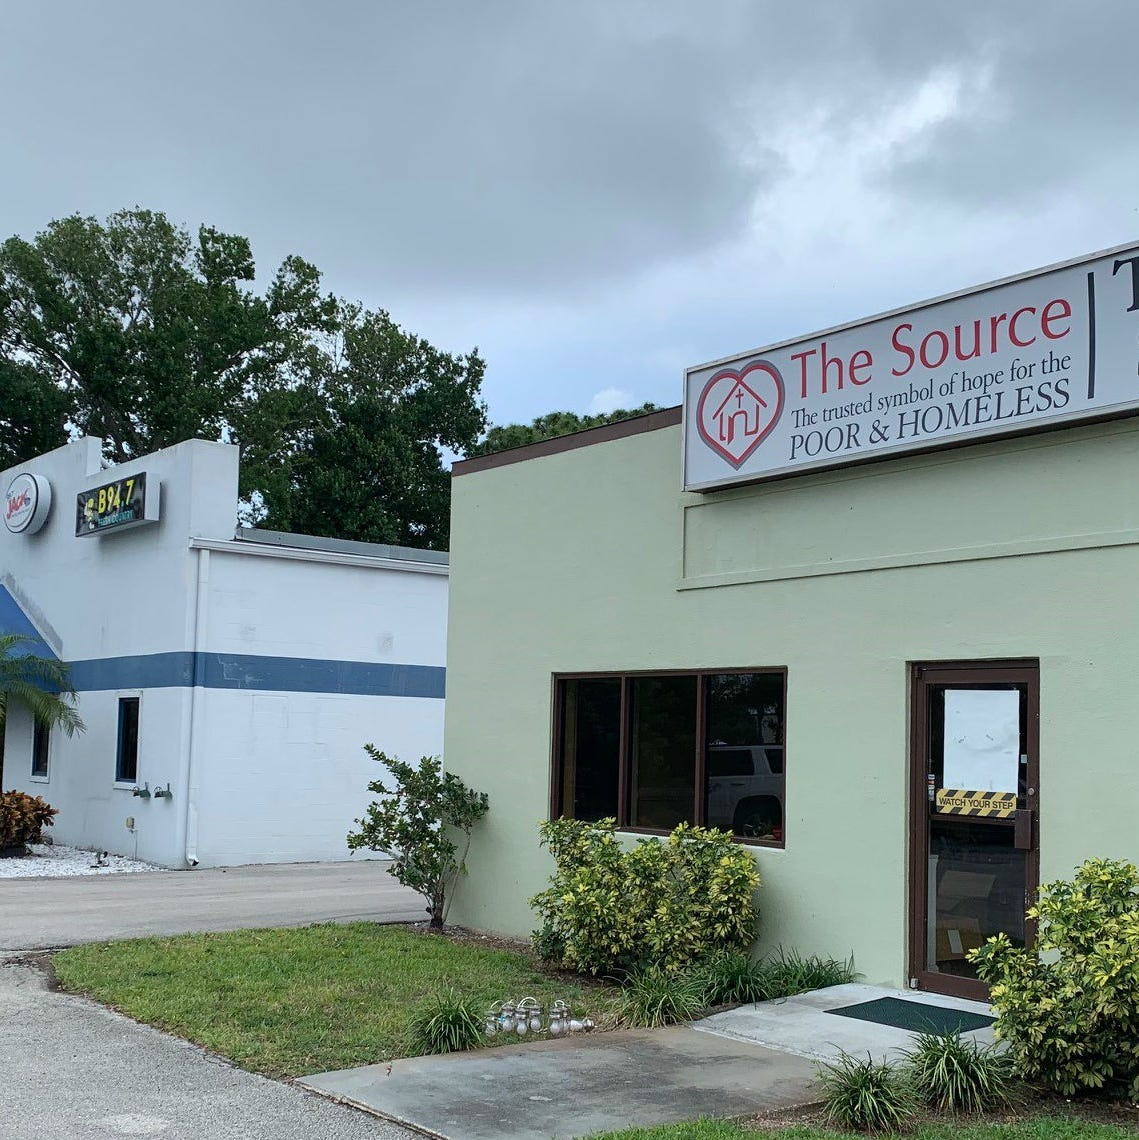 Will alleged public sex acts on Vero Beach's main street spark action on homeless?